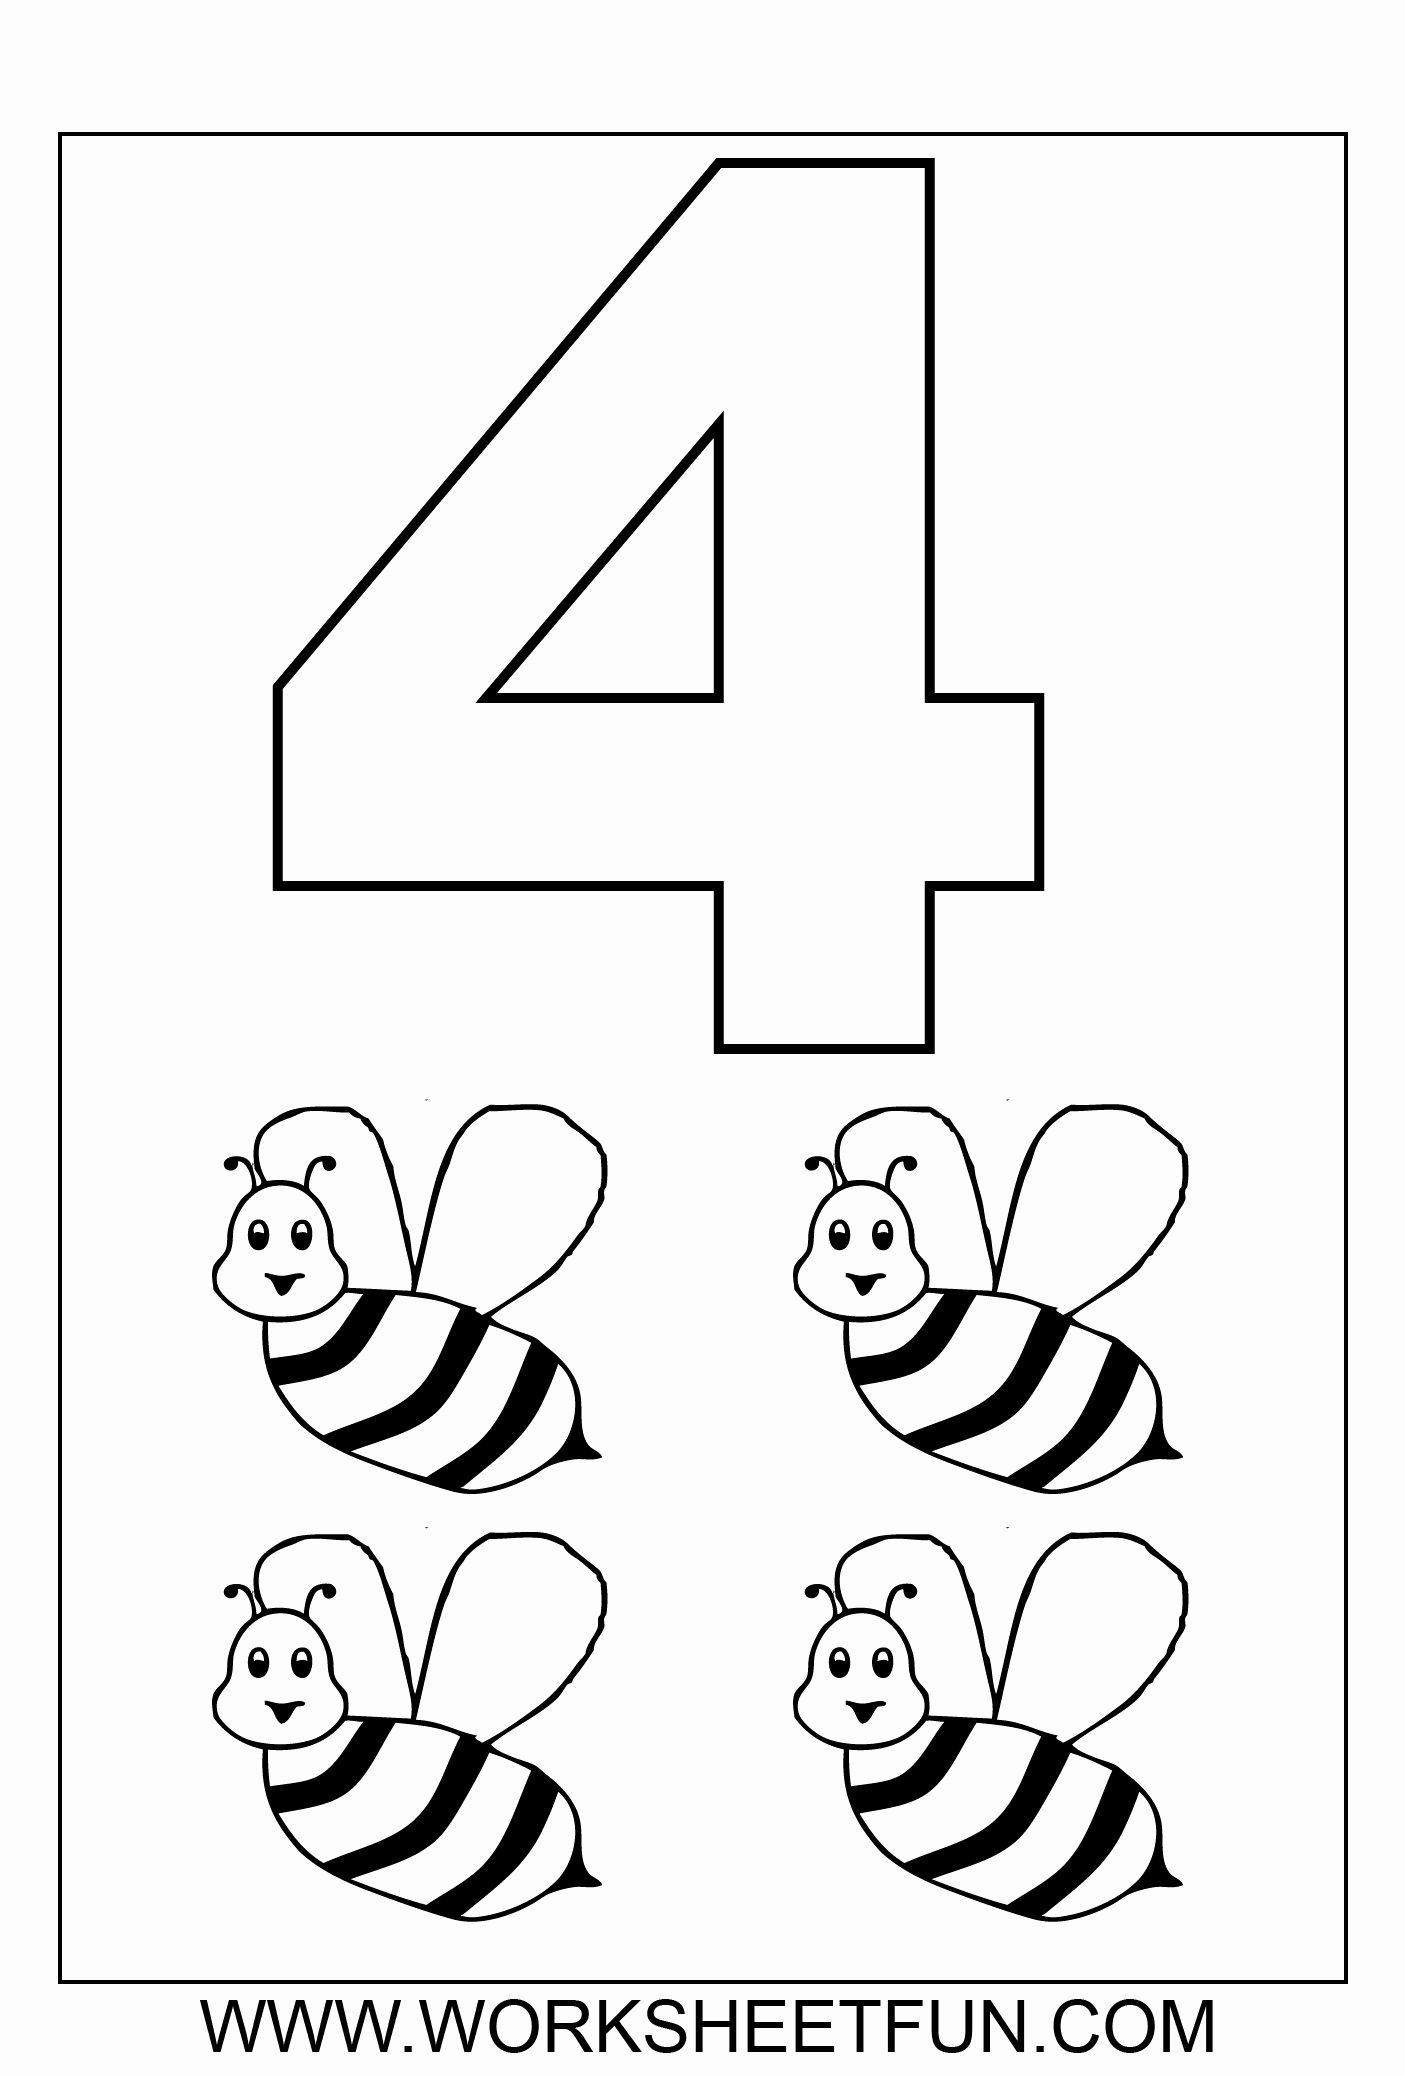 Number Coloring Worksheets For Kindergarten In